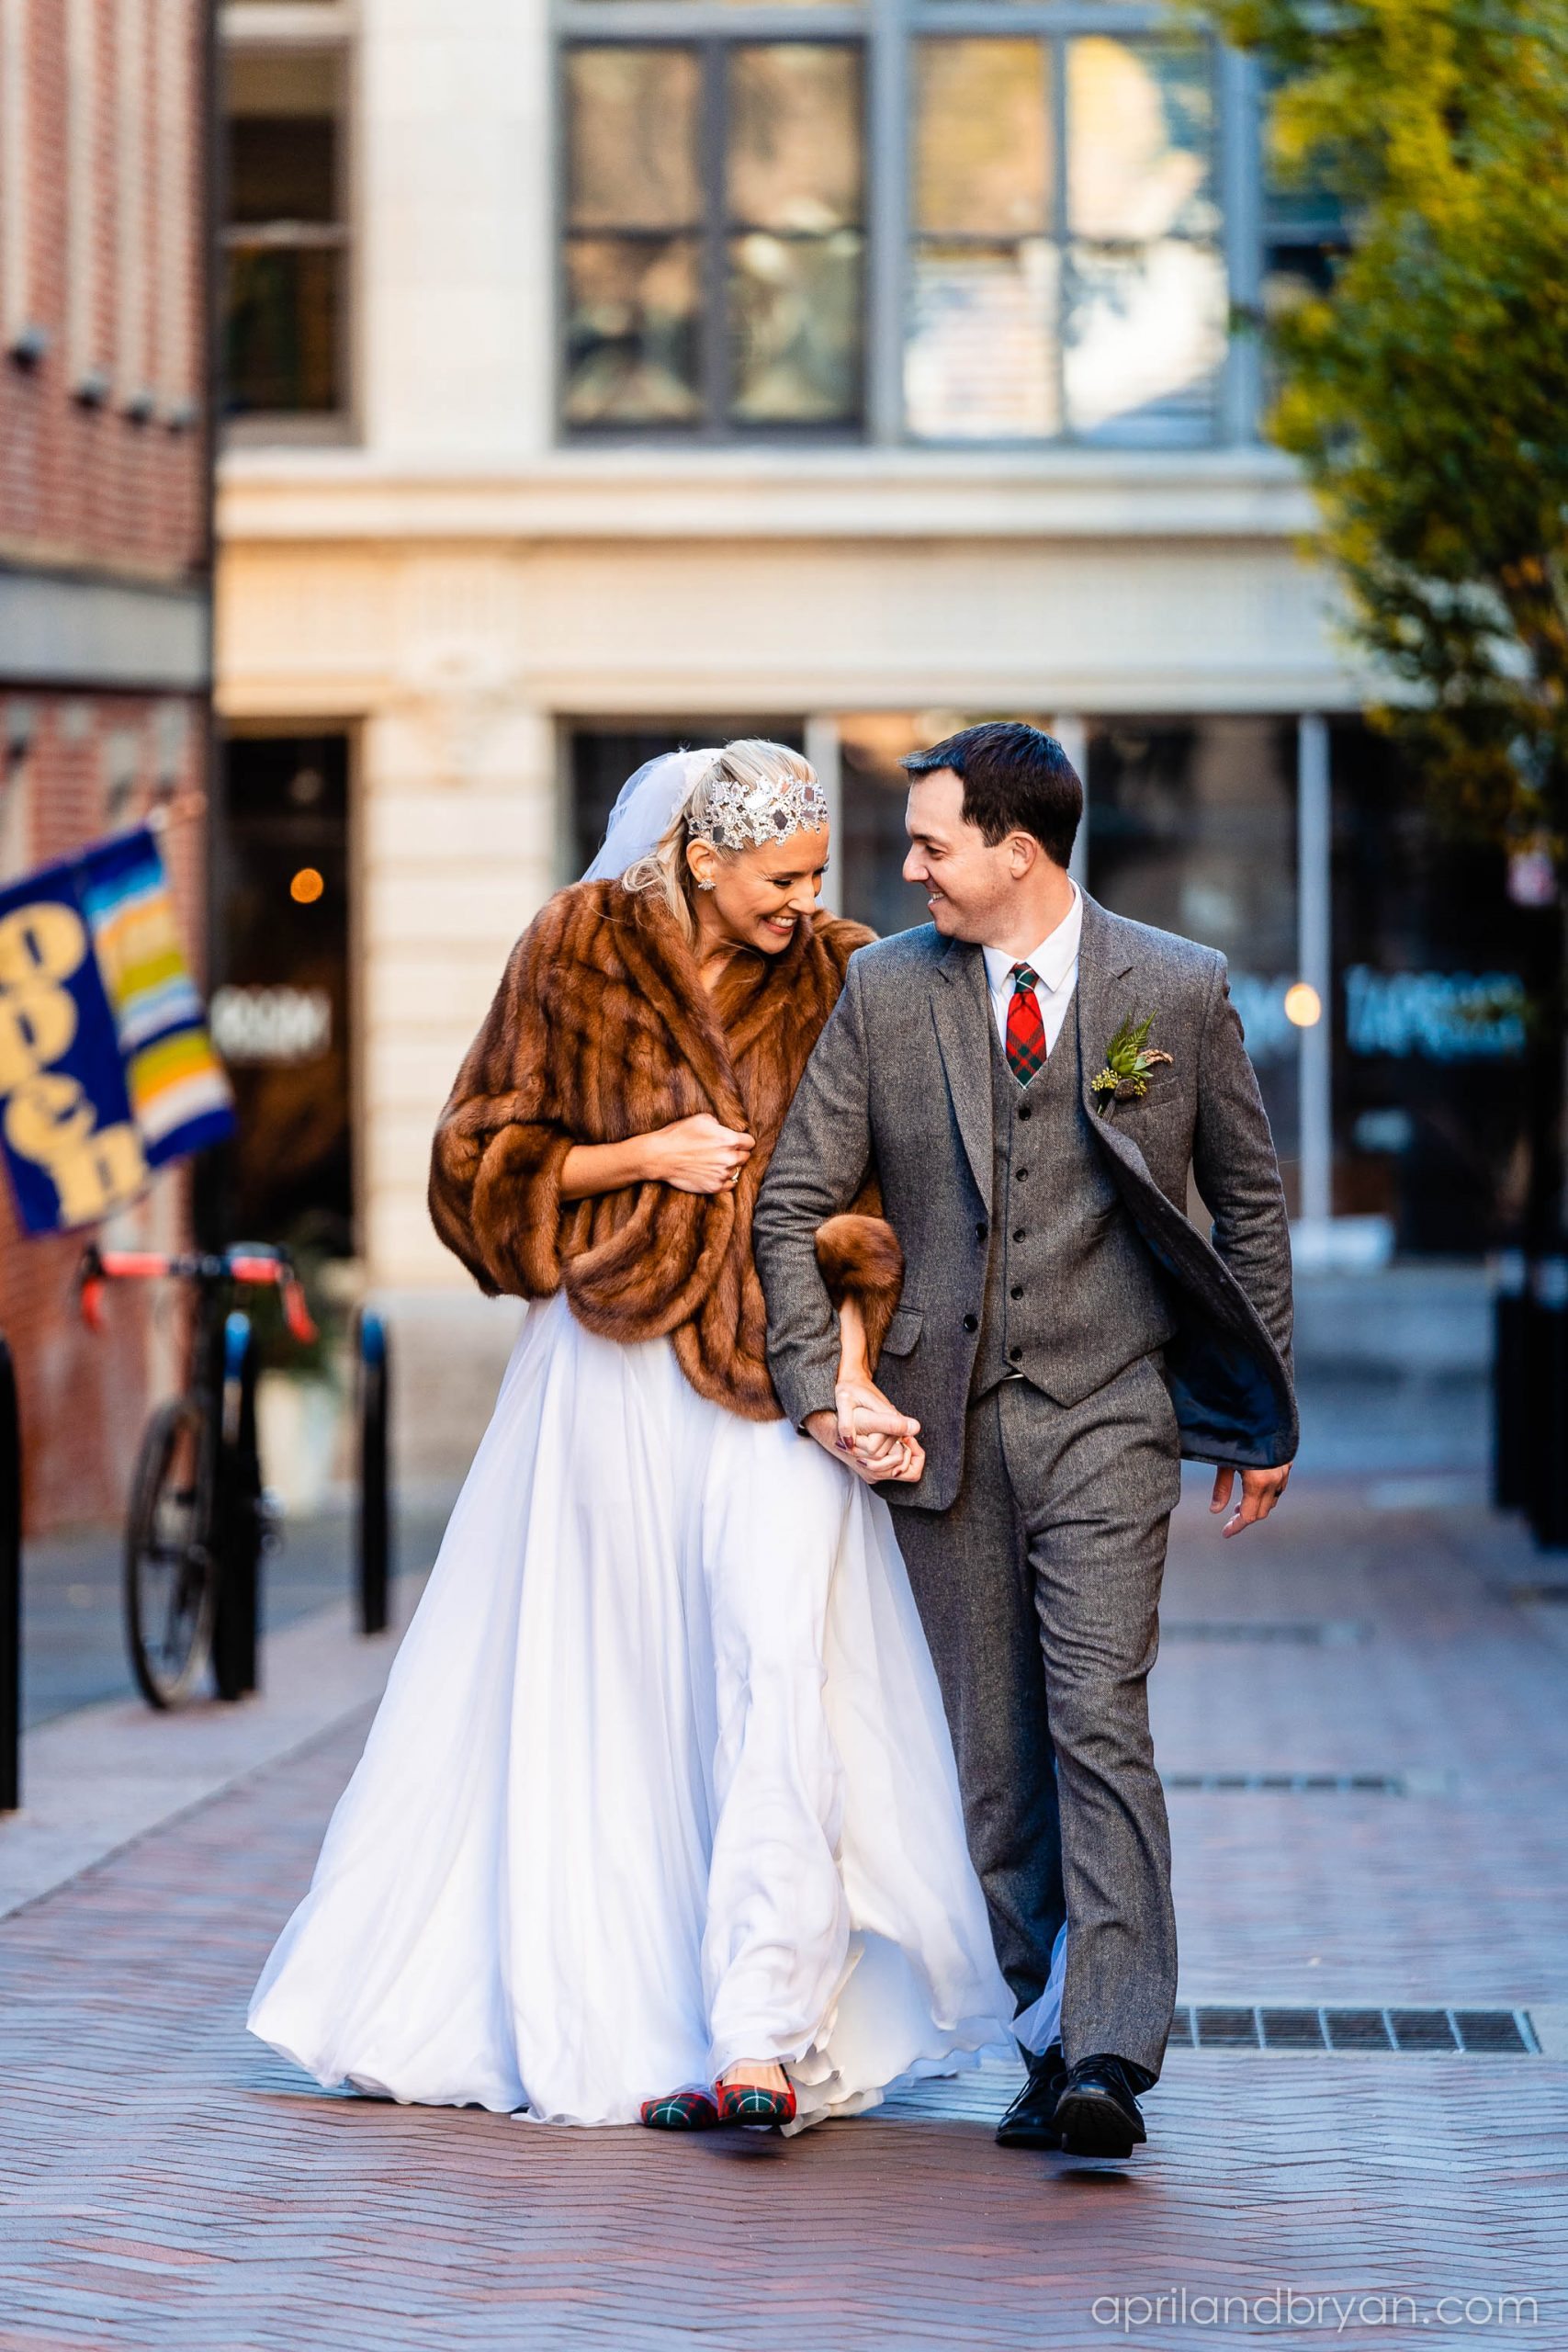 the newly wedded couple enjoy each other's company on the chilly noVEMBER DAY. Nicholas and Rebecca Fasnacht tie the not at Tellus360 on November 1, 2019. Captured by April & Bryan Photography and featured on Dream Weddings.